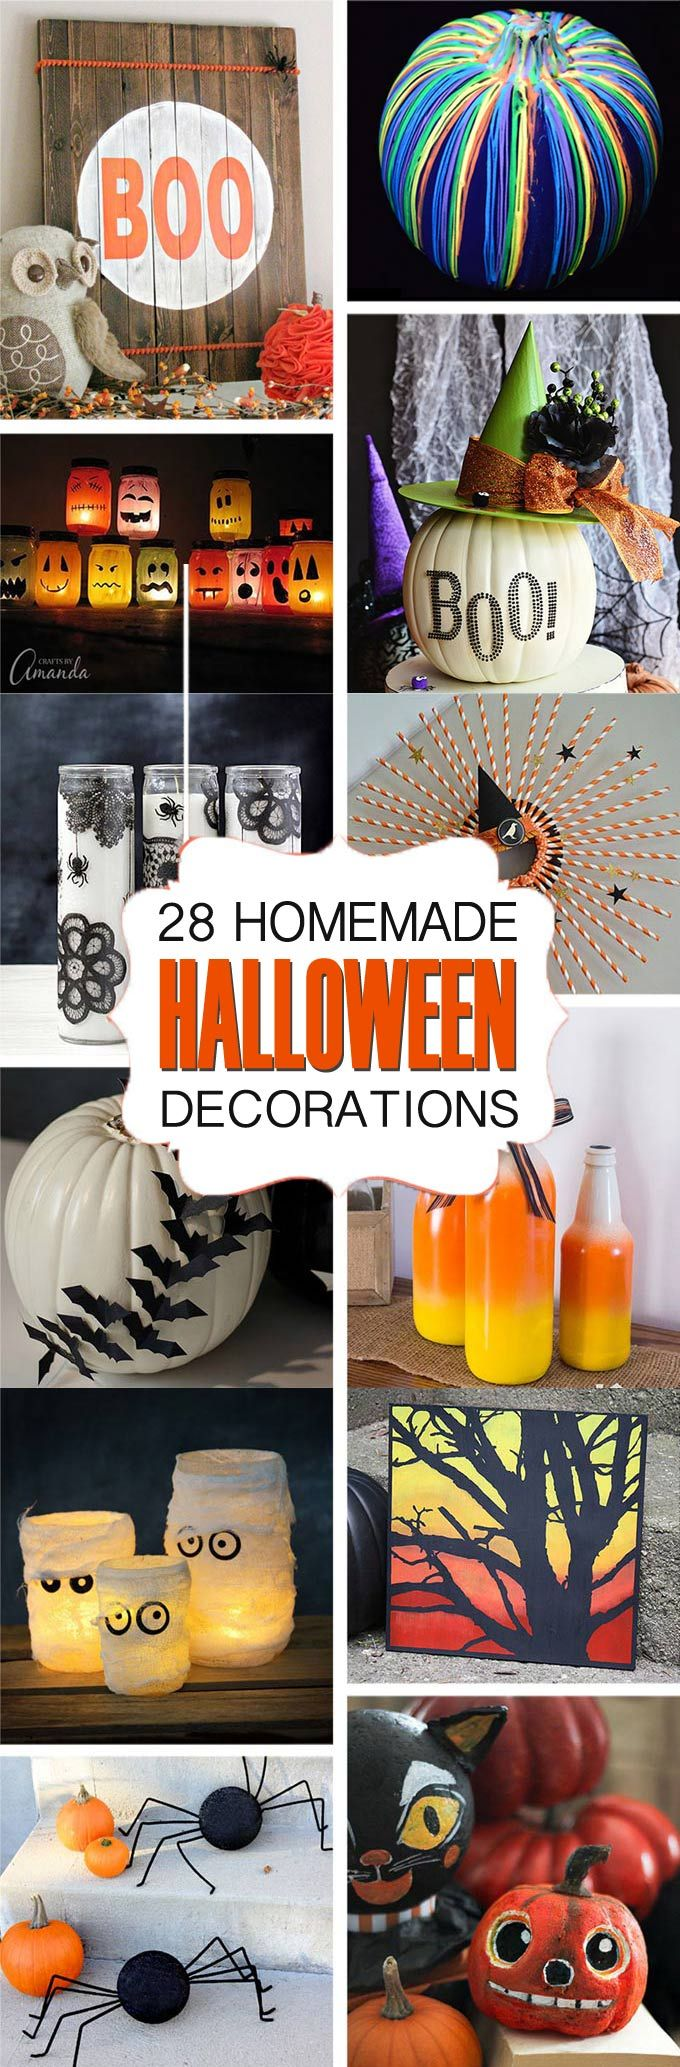 28 Homemade Halloween Decorations - if you are looking for crafty ways to decorate for Halloween that won't cost you a fortune, this list of DIY ideas is full of Halloween crafts you can make yourself!